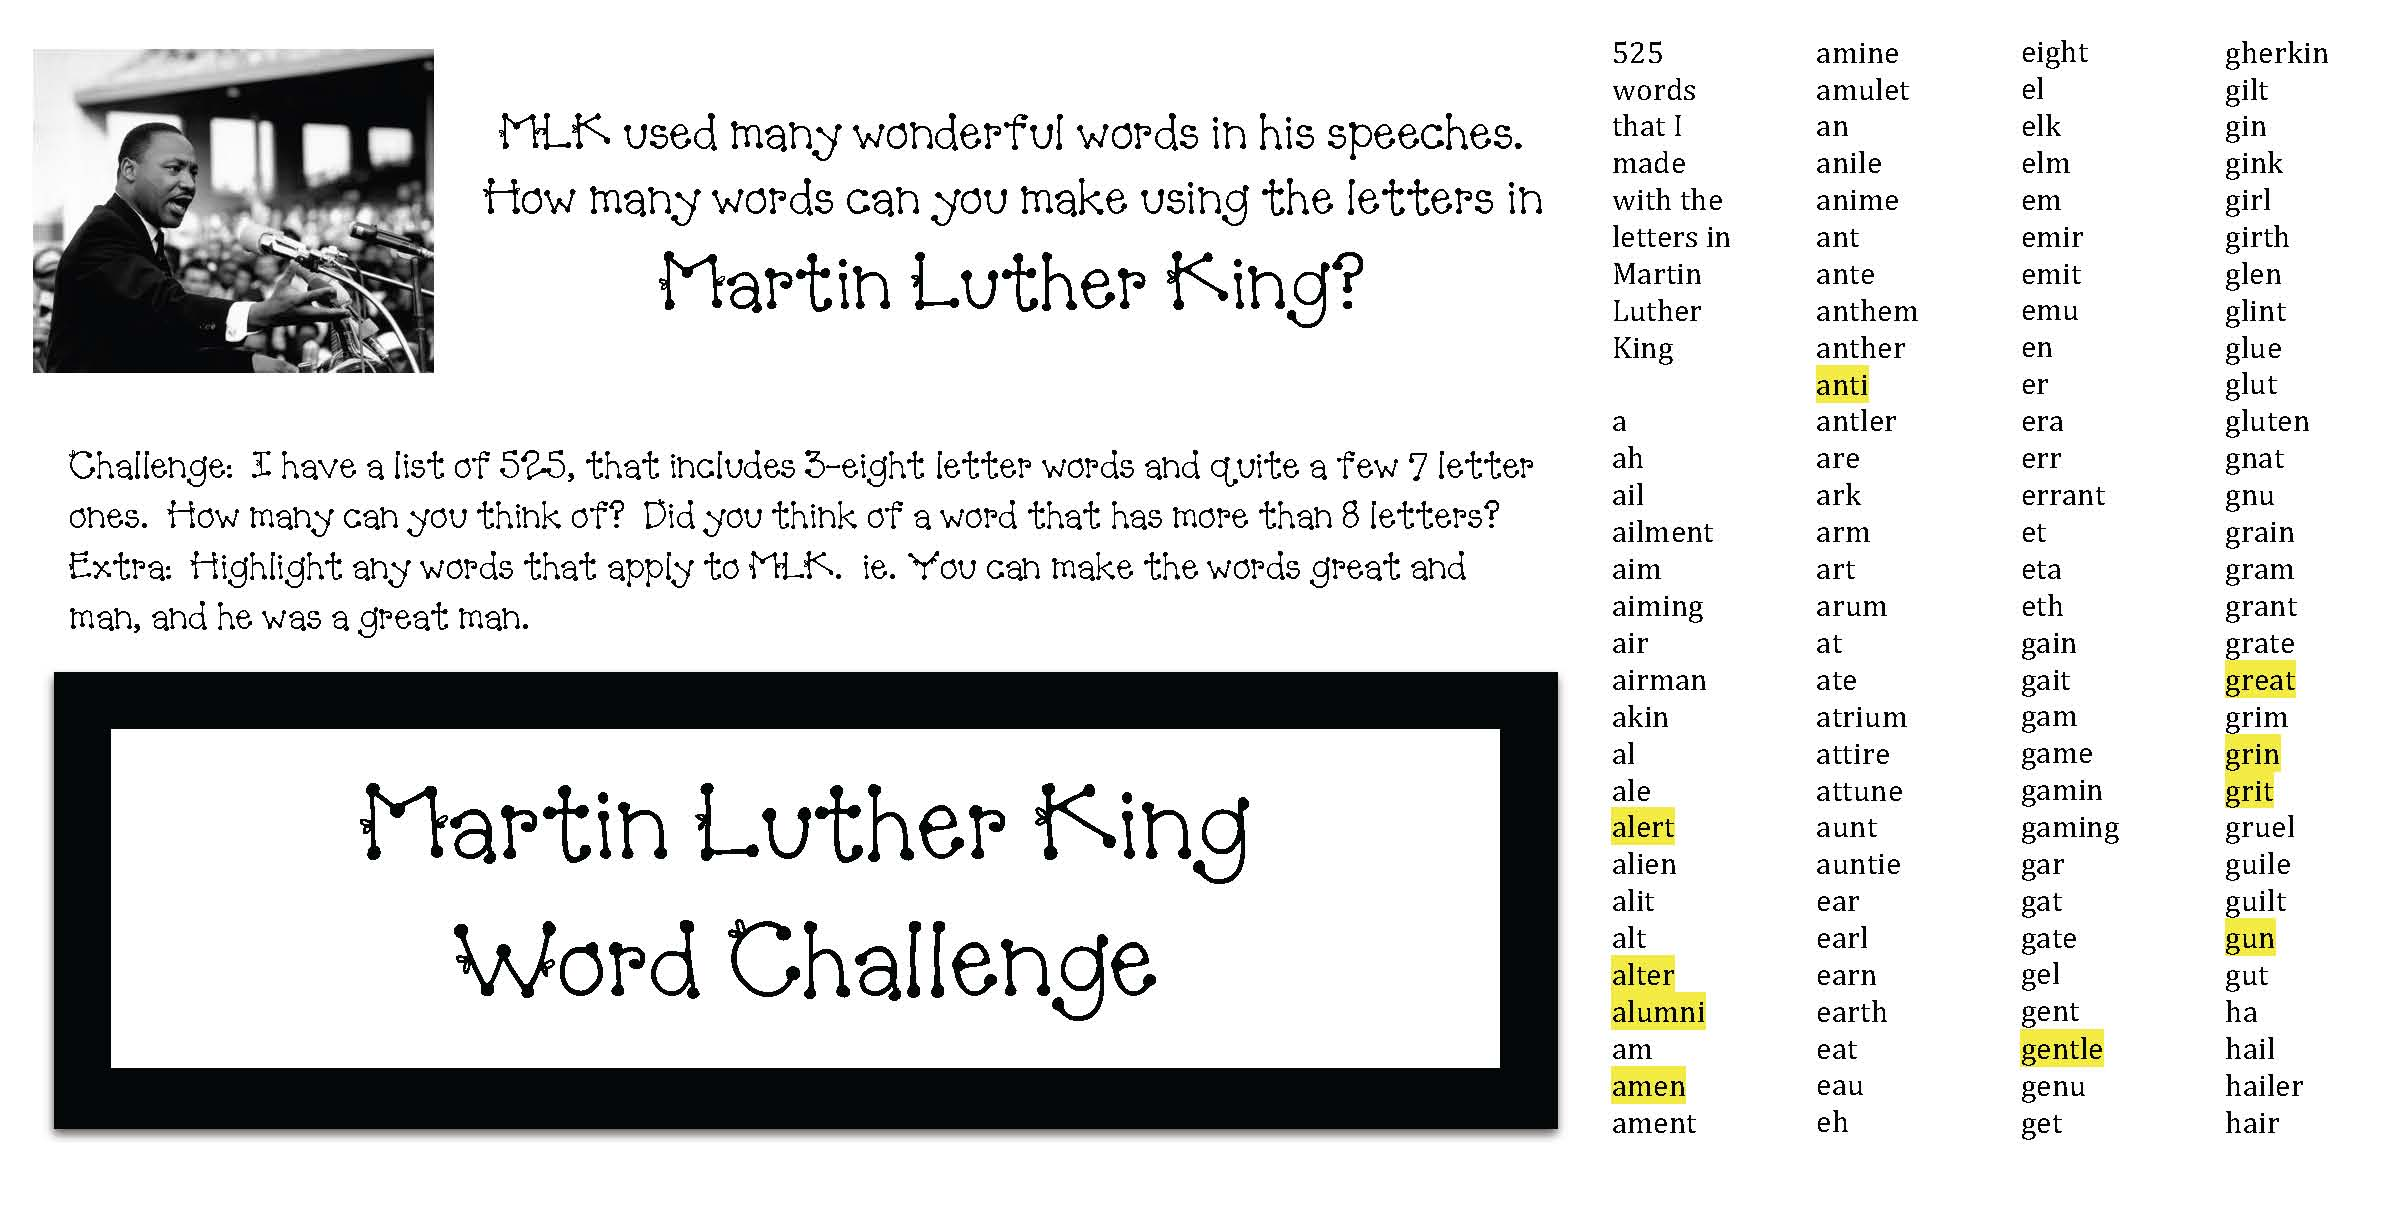 MLK ideas, MLK activities, 35 favorite mlk quotes, mkl quotations, 35 martin luther king quotes, quotes by martin luther king, martin luther king day activities, martin luther king activities, martin luther king crafts, martin luther king sites, martin luther king books, martin luther king activities for kids, martin luther king writing promtps, writing prompts for january, MLK crafts, MLK writing promtps, MLK lessons for young children, good books for martin luther king day